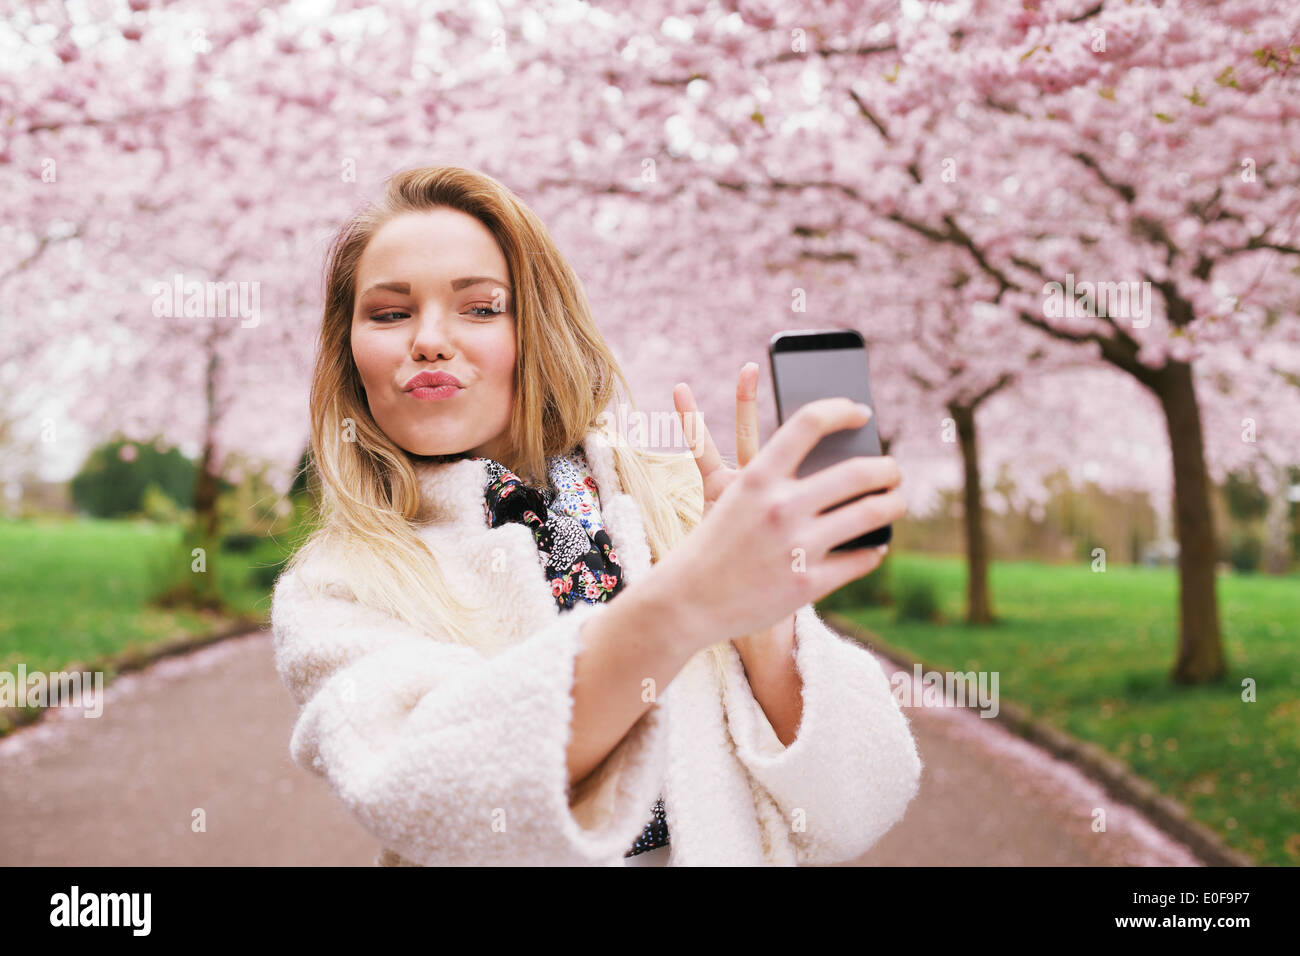 Cute young woman gesturing peace sign while taking her picture with mobile phone. Caucasian female model at spring - Stock Image